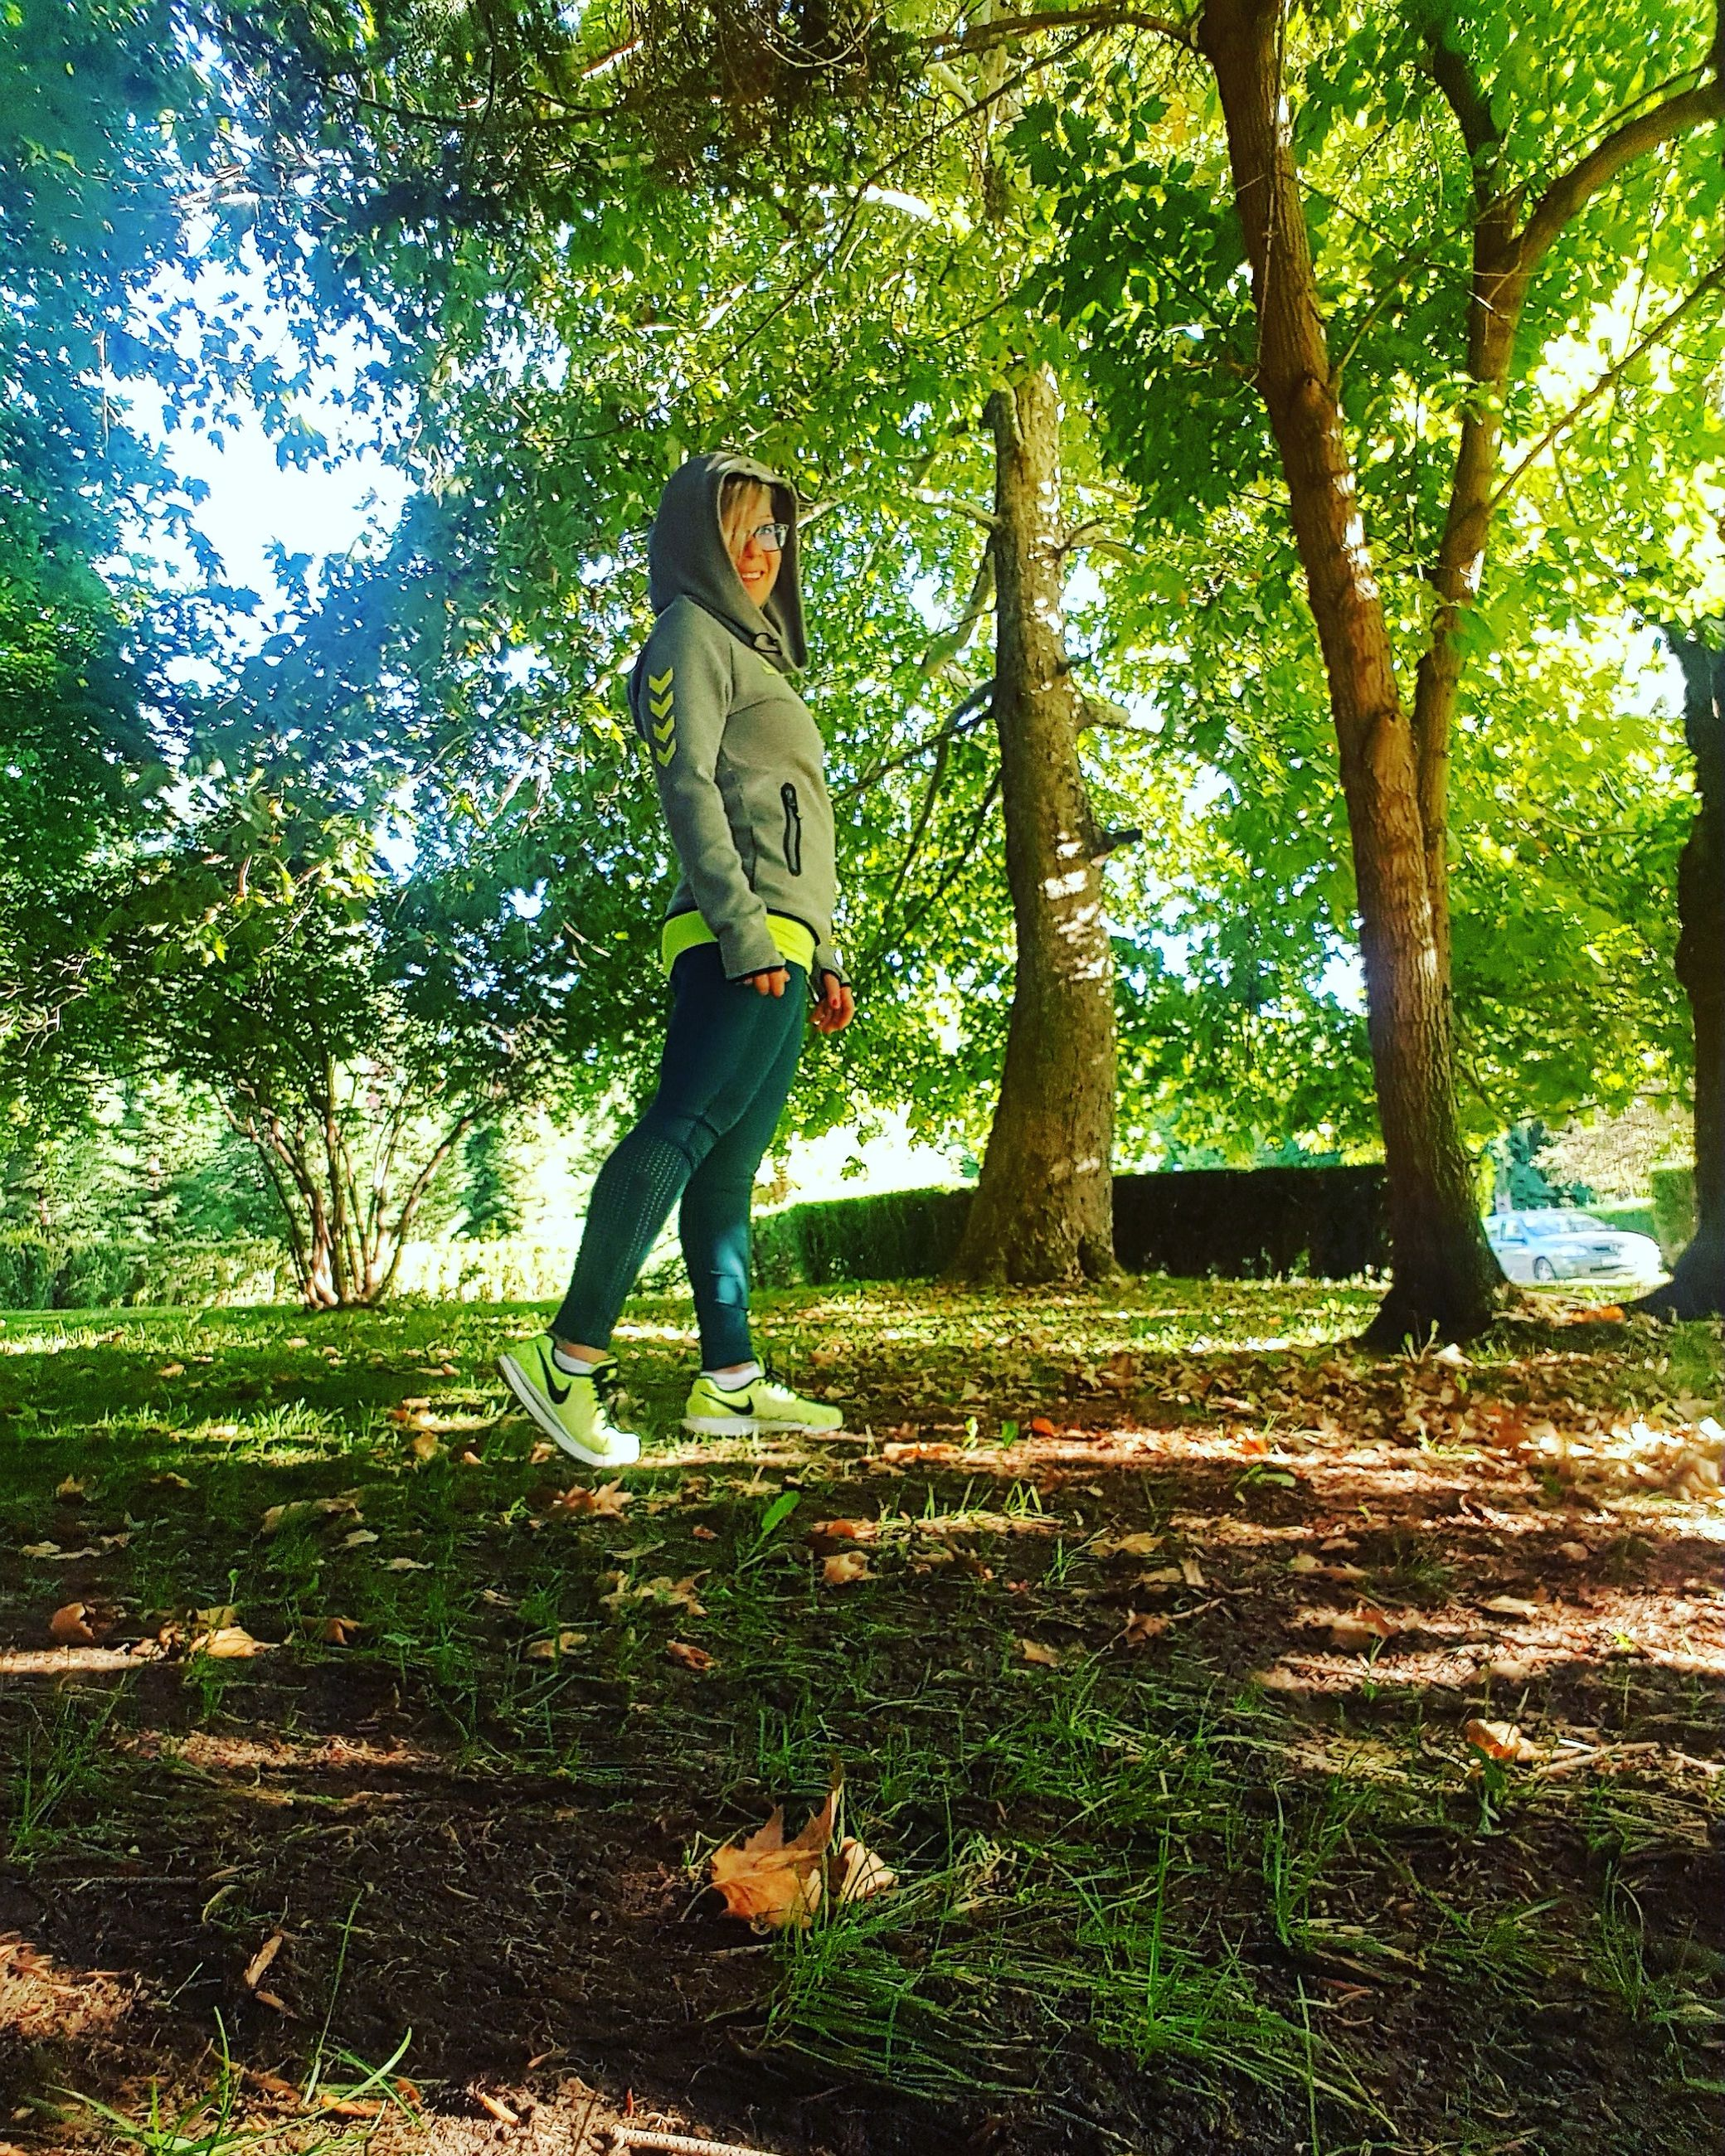 tree, full length, one person, casual clothing, real people, day, standing, leisure activity, young adult, nature, growth, outdoors, young women, people